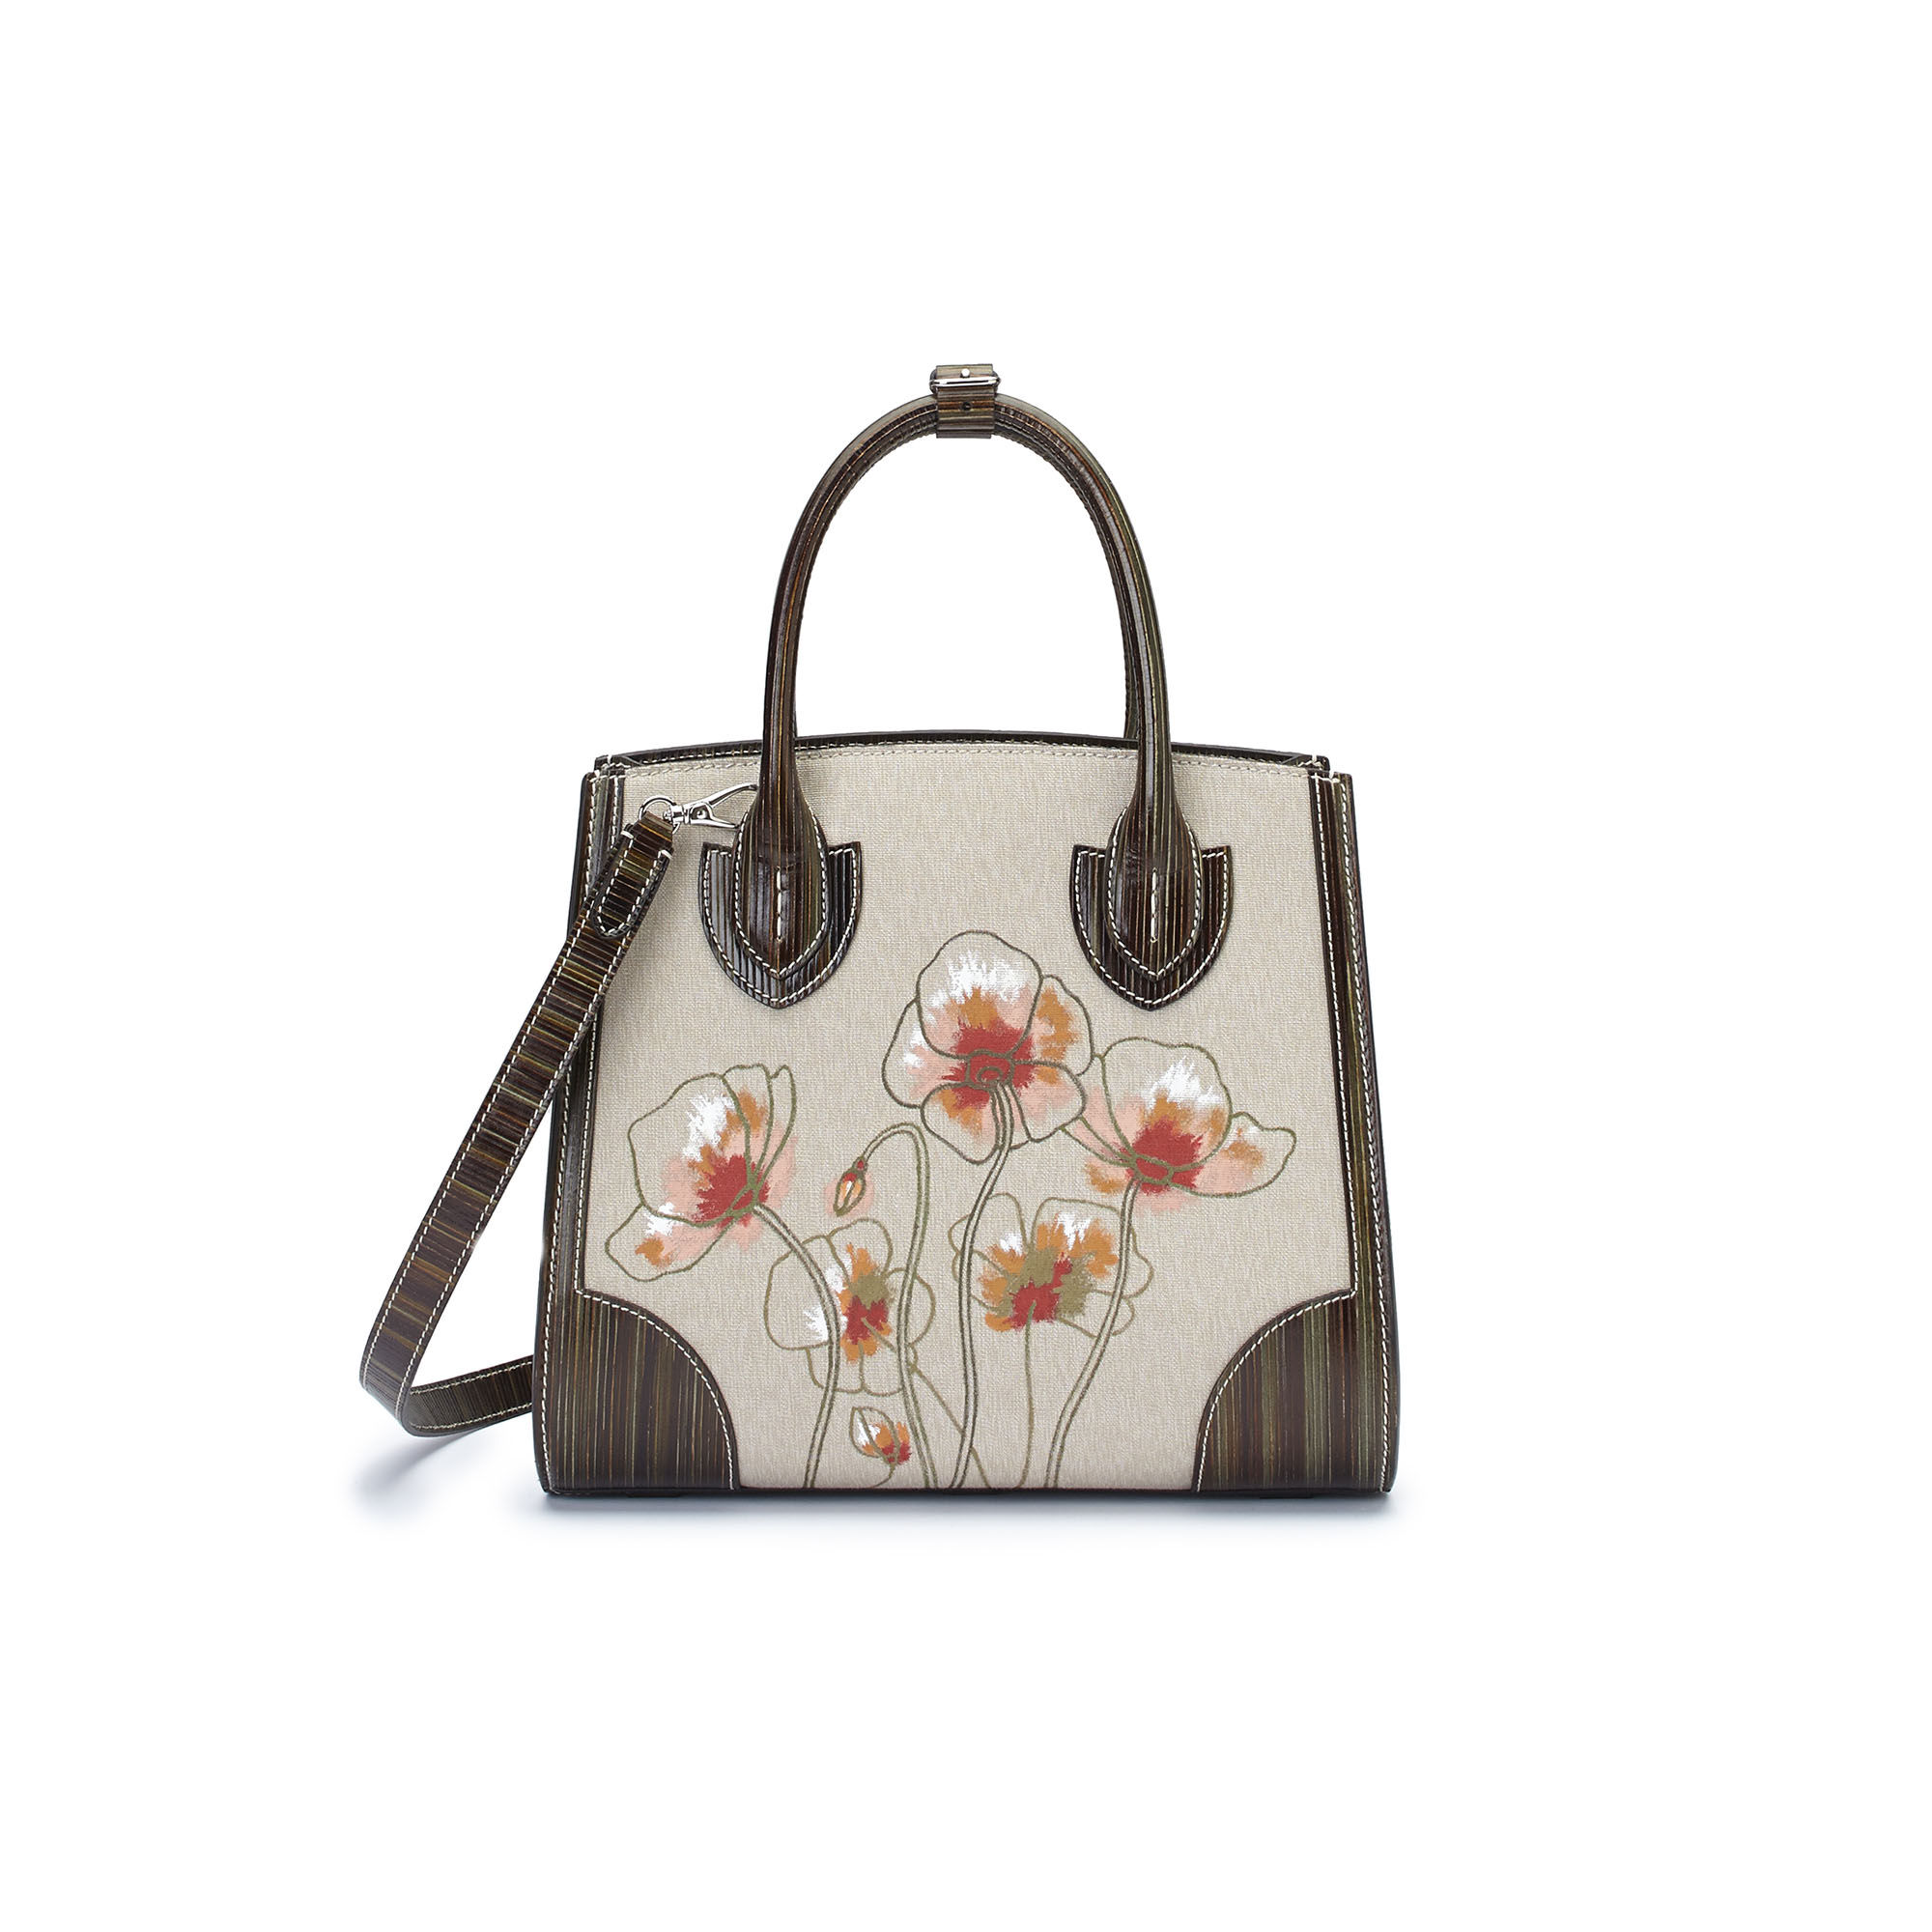 The military green with hand painted poppy flowers wood leather canvas Darcy bag by Bertoni 1949 03